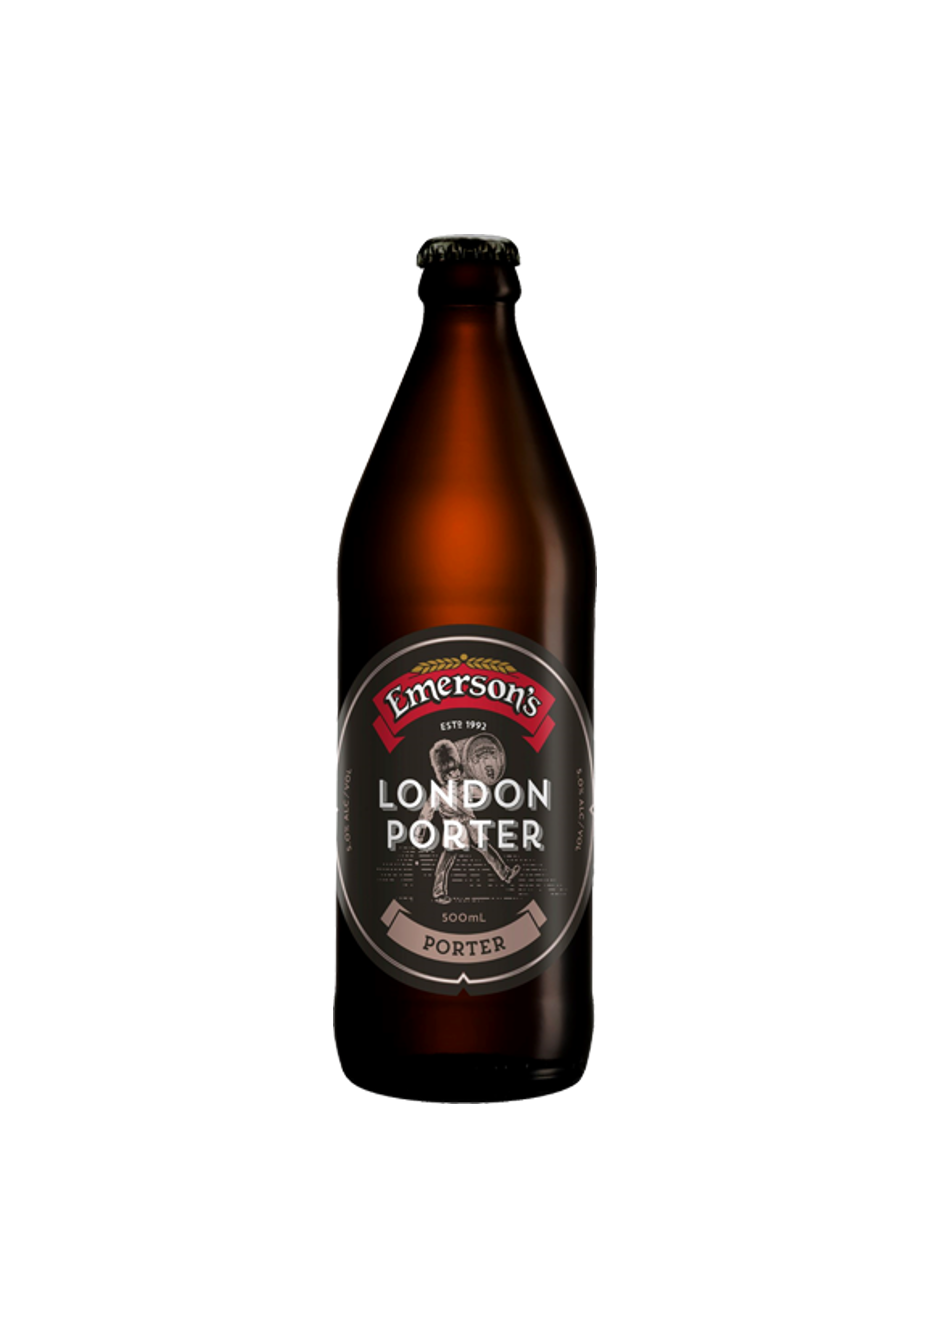 Emerson's London Porter